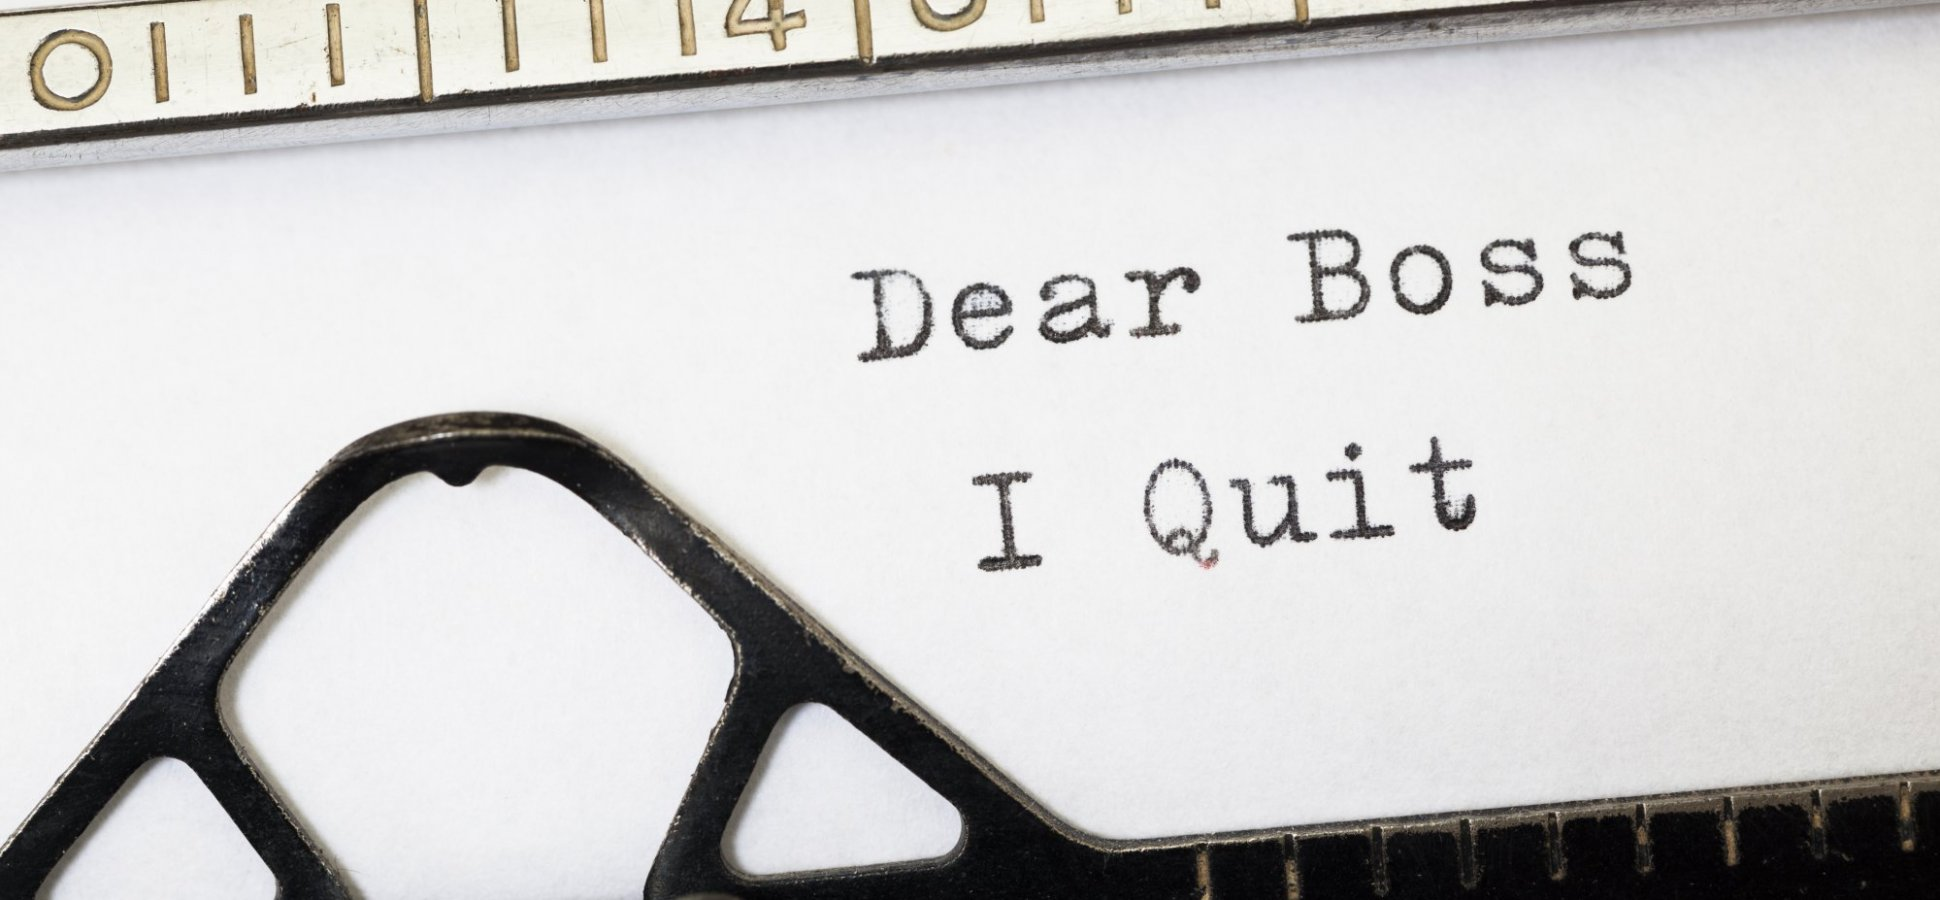 Quitting Your Job? Make Sure You Don't Make This Common Mistake Before Leaving